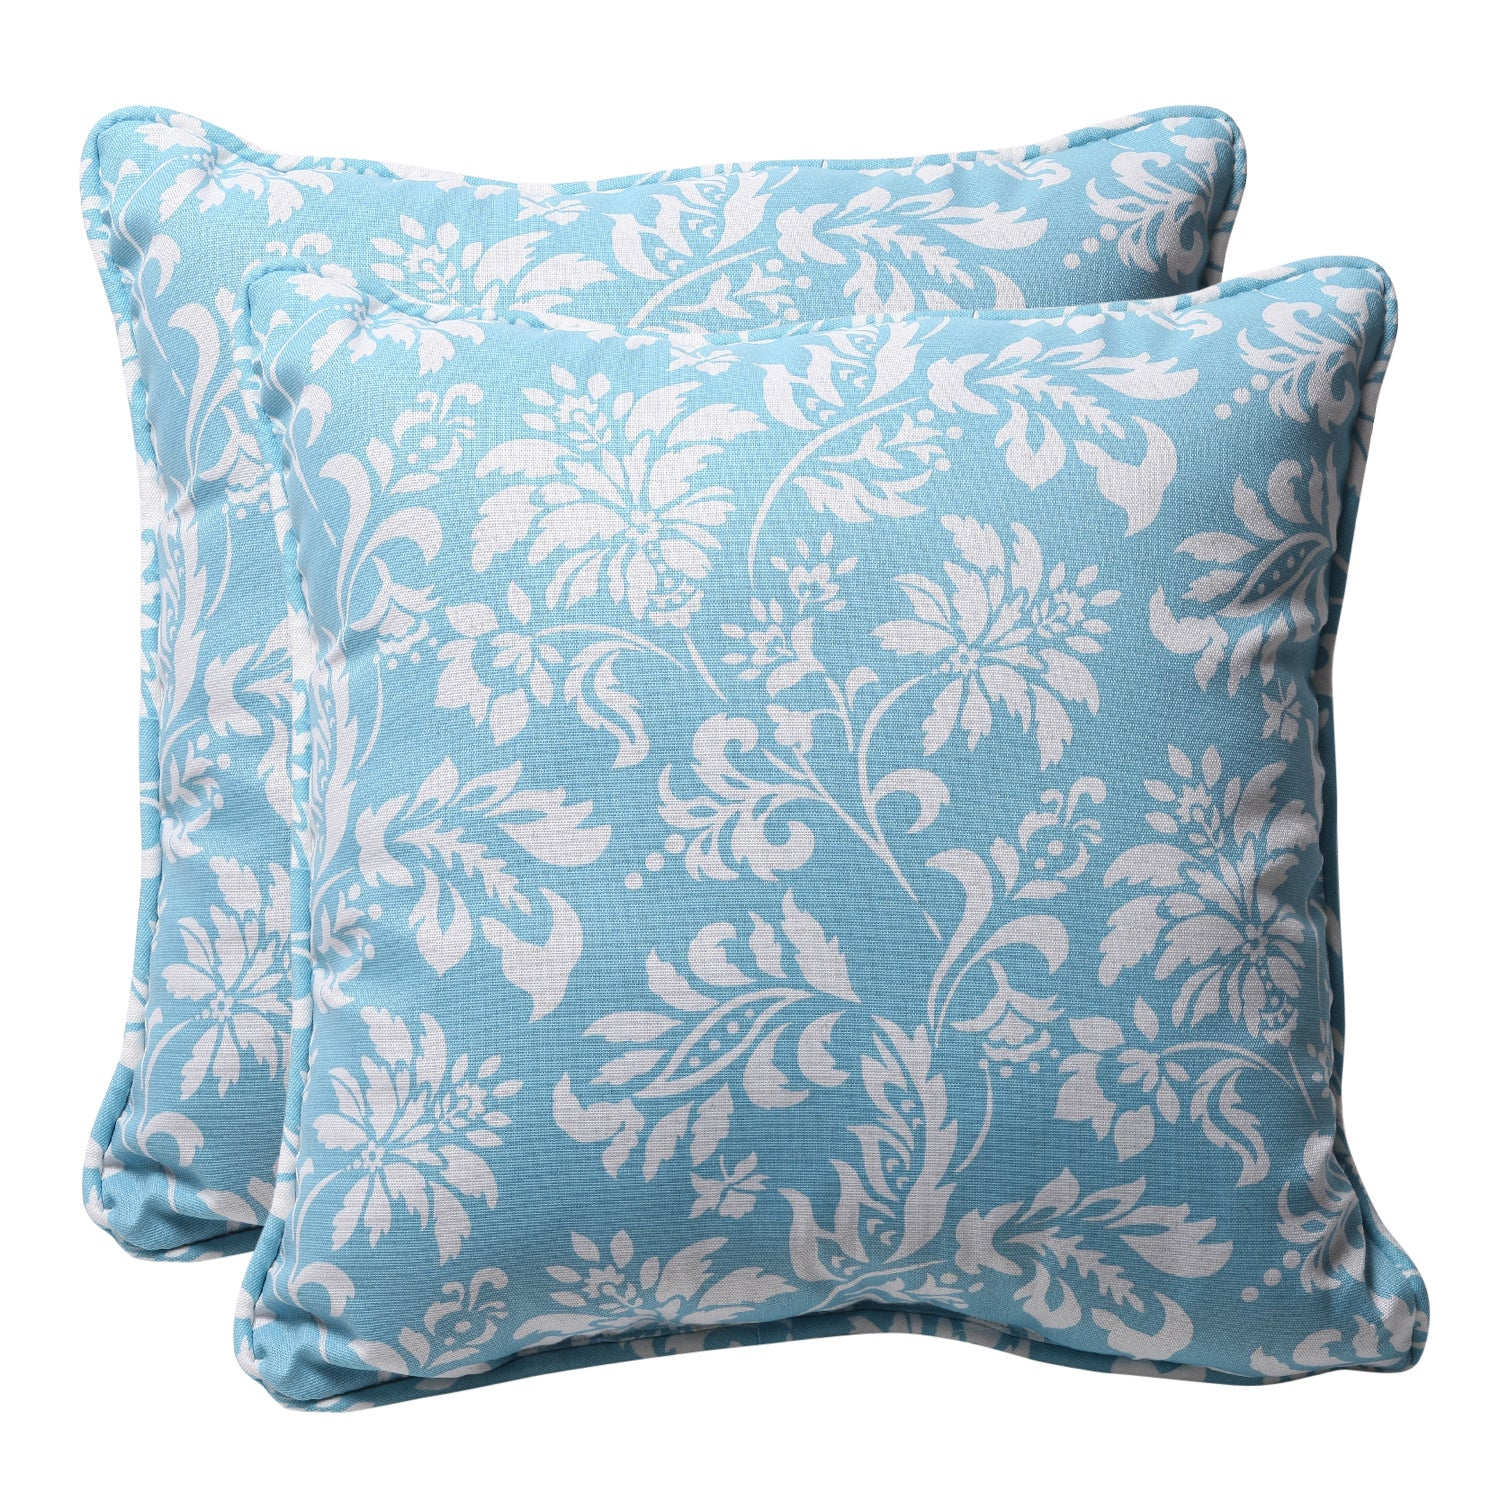 Decorative Blue/ White Floral Square Outdoor Toss Pillows (Set of 2)